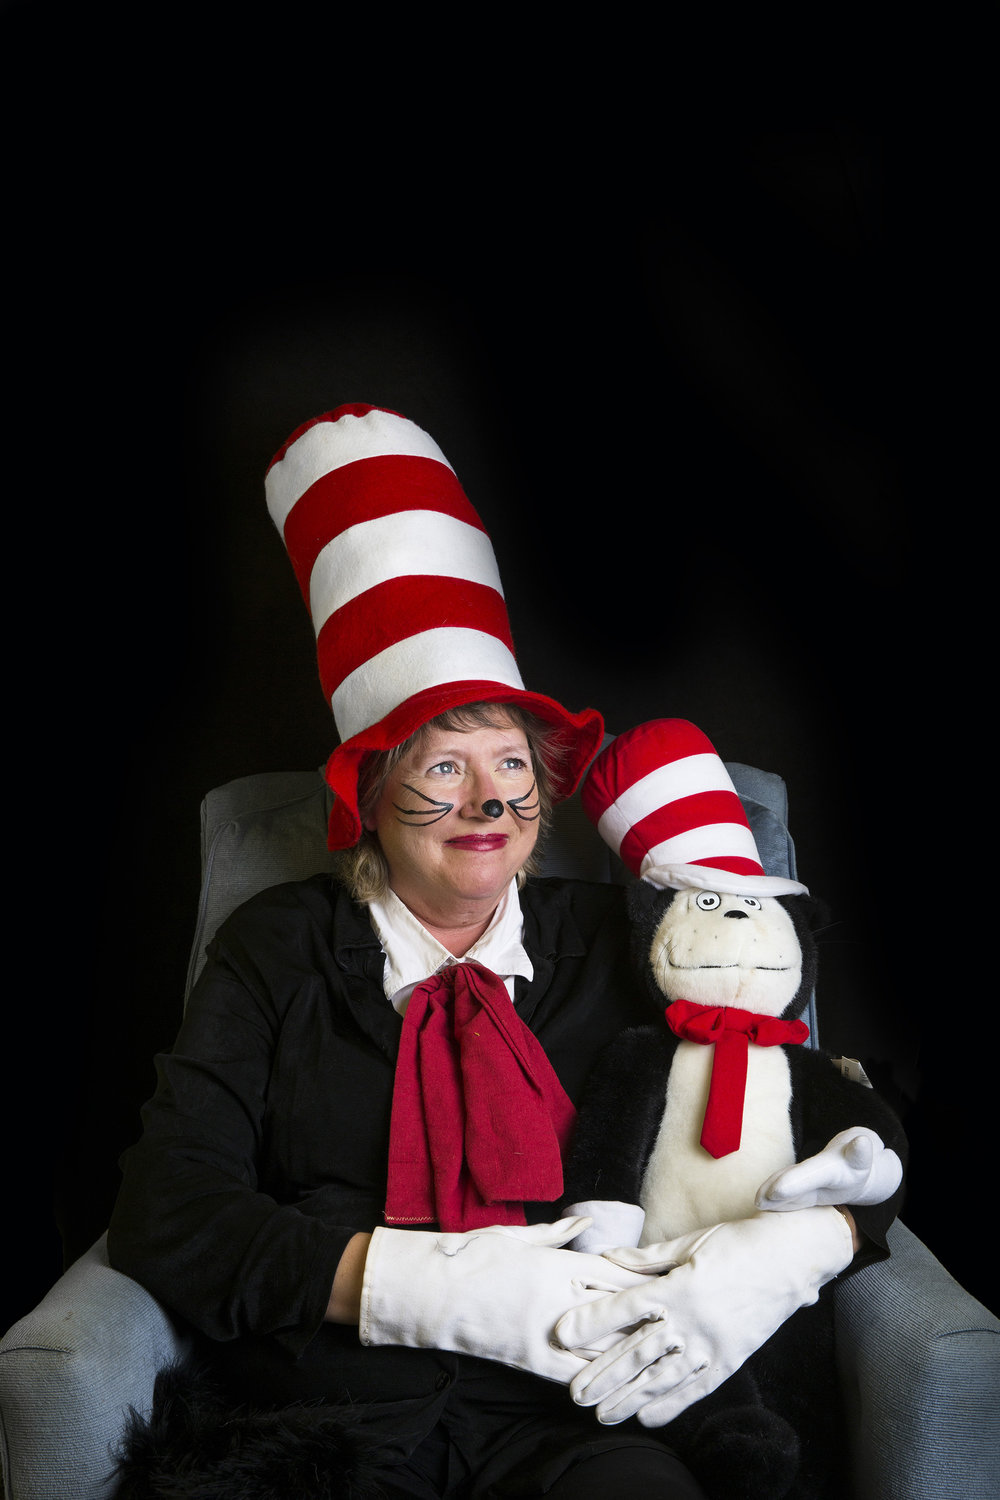 Connie Bettinger-Hennink, 53, dressed as Dr. Seuss' iconic character Cat in the Hat, poses for a portrait in her Golden Gate home on Tuesday, Dec. 20, 2016. For the past 25 years, Connie has visited schools and libraries in Southwest Florida as a Cat in the Hat reenactor to share the joys of reading.